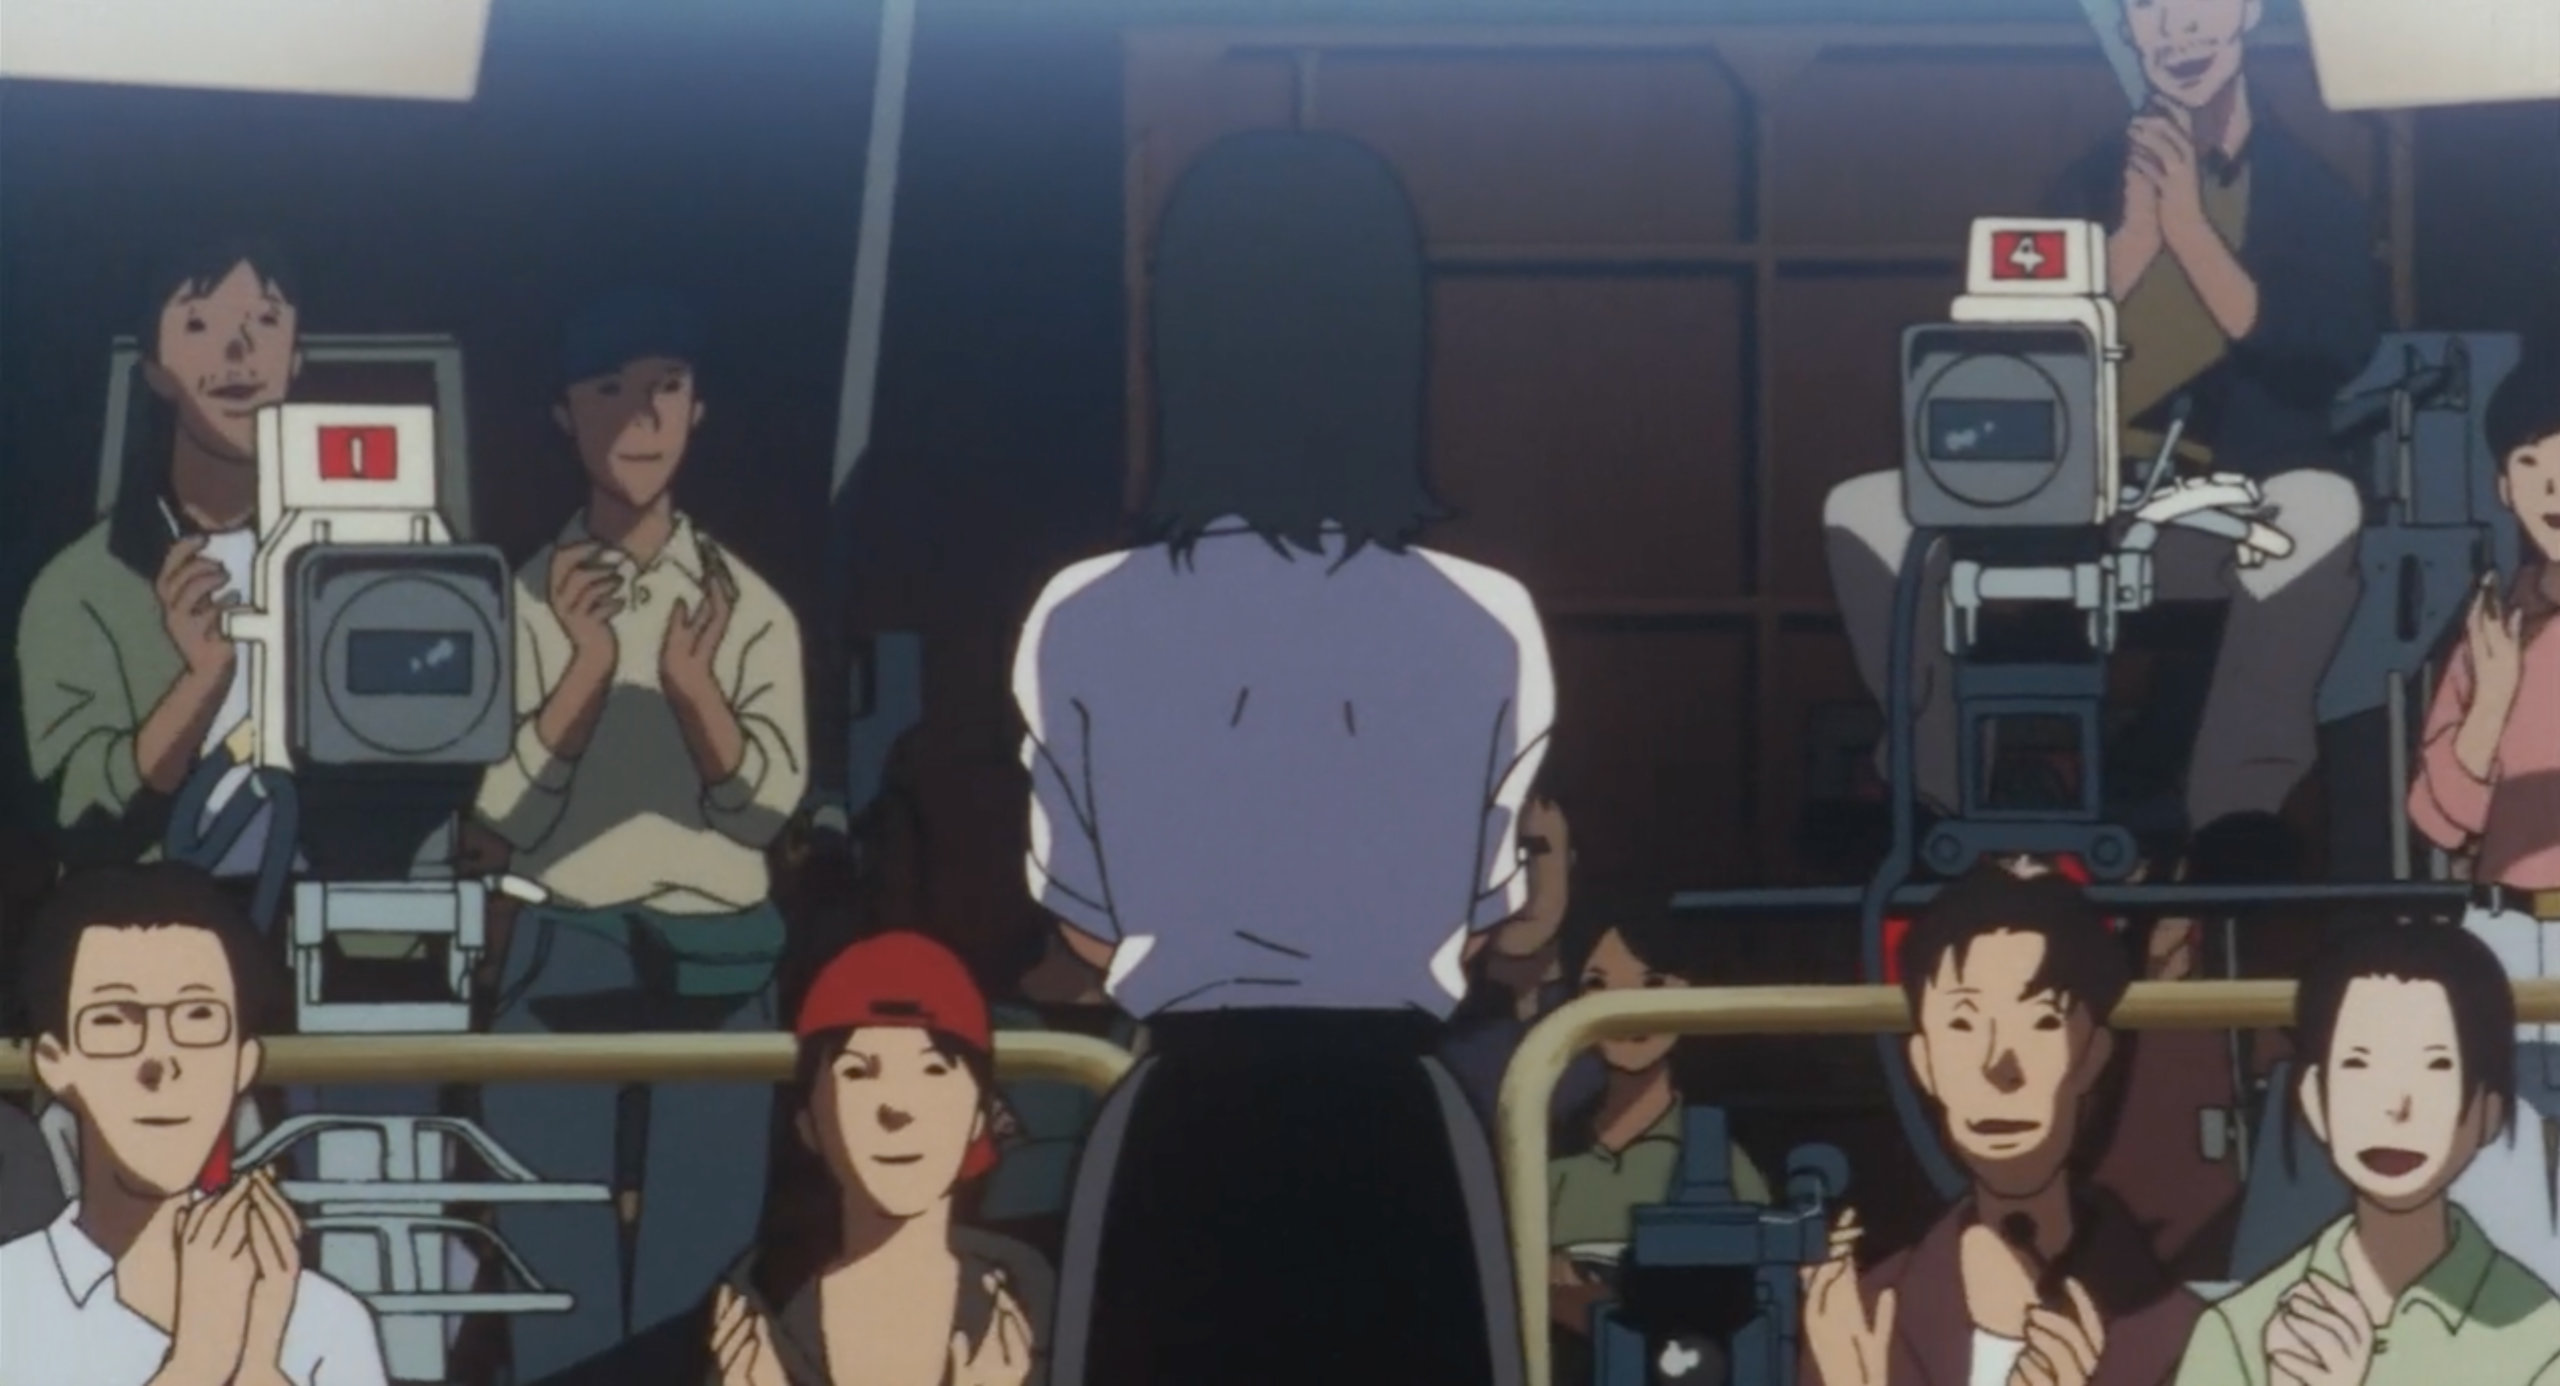 The Double Bind crew applauds Mima after a shoot in Perfect Blue